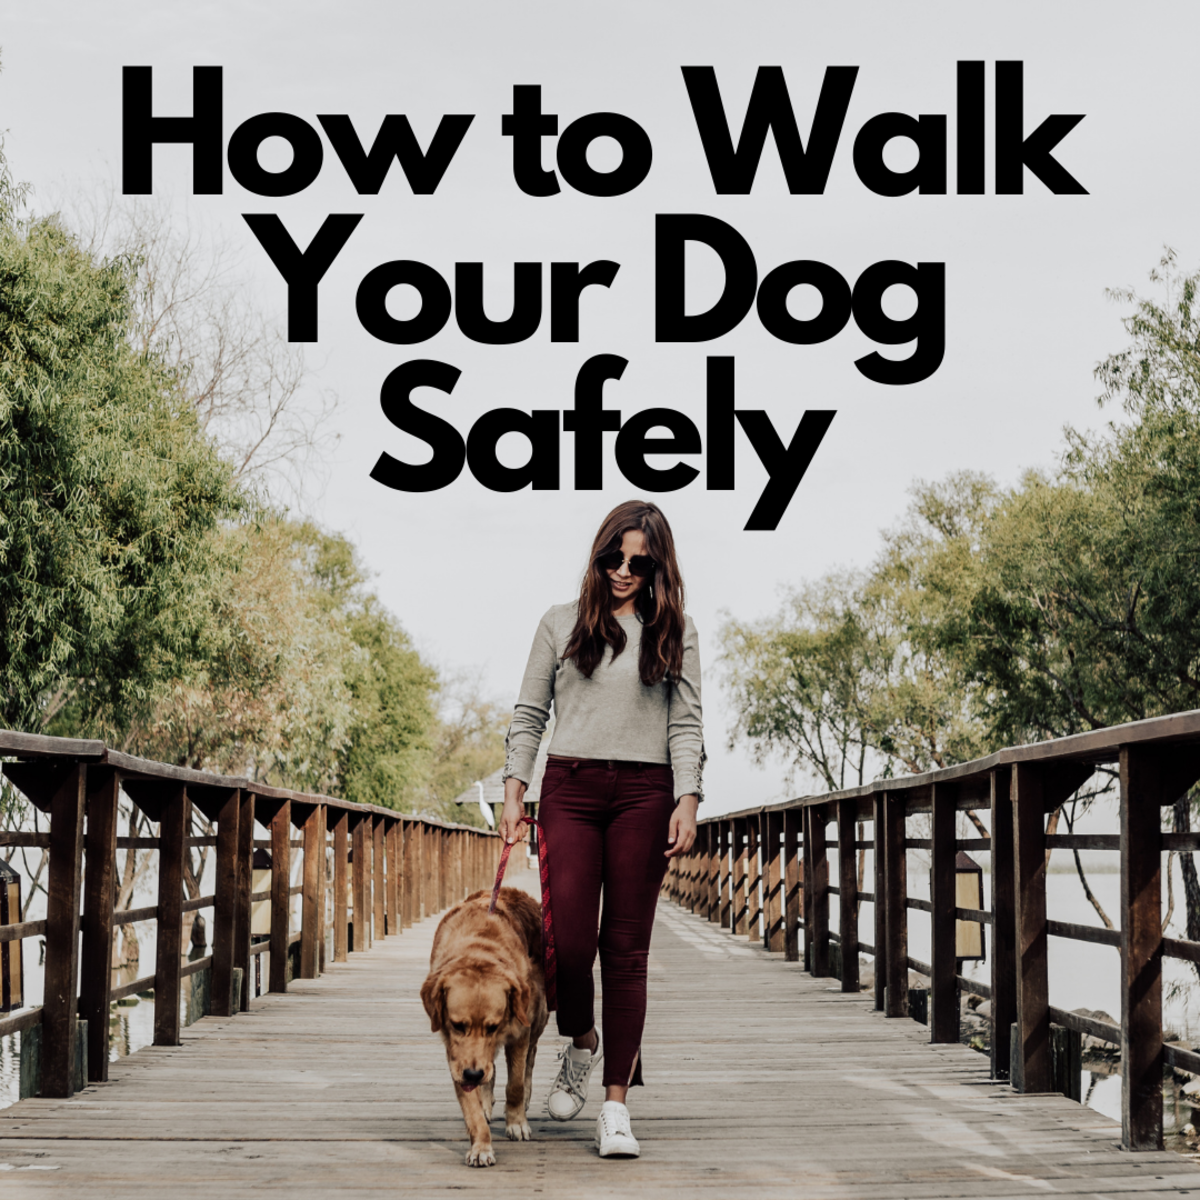 These tips will help you and your pup on your walks together.